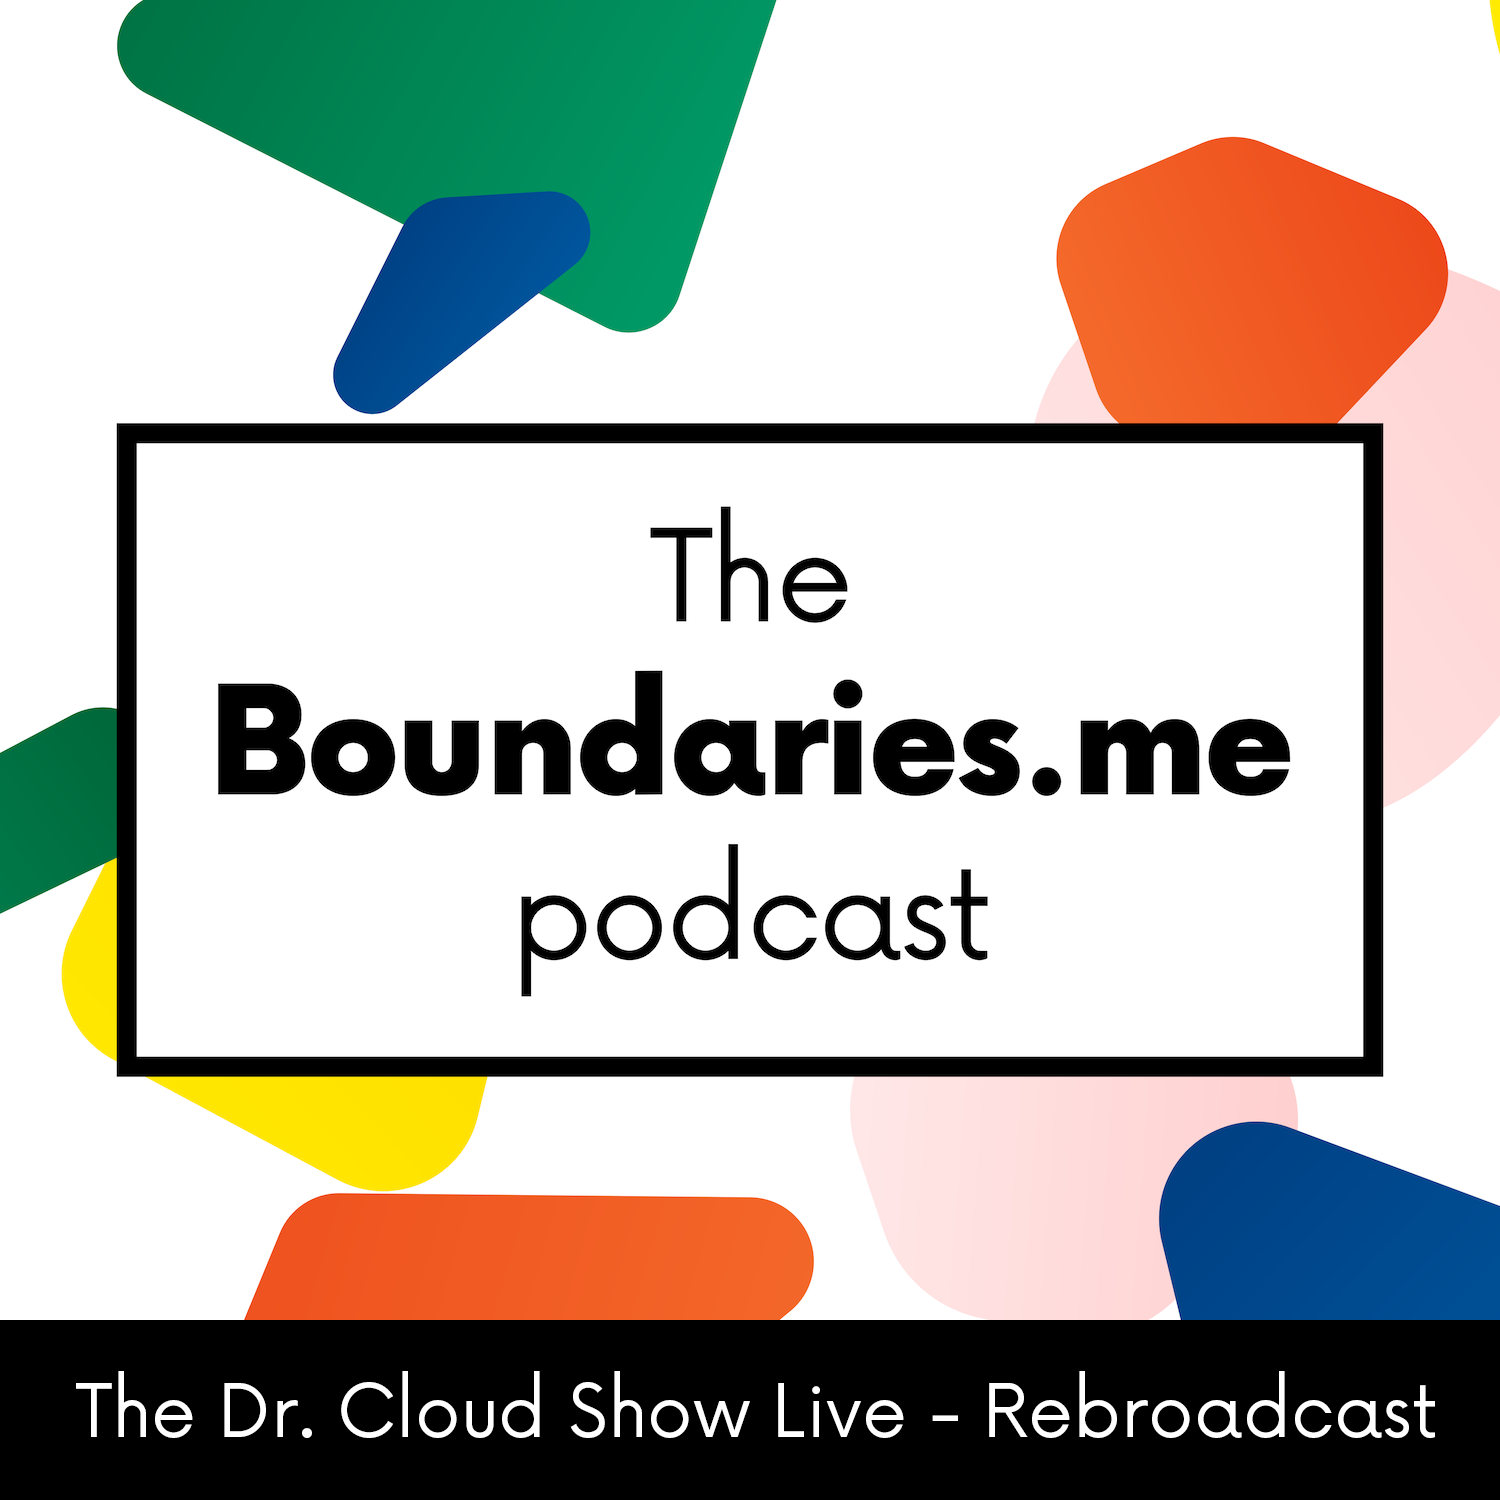 Episode 216 - The Dr. Cloud Show Live - The Process of Recovery - 4-21-2021